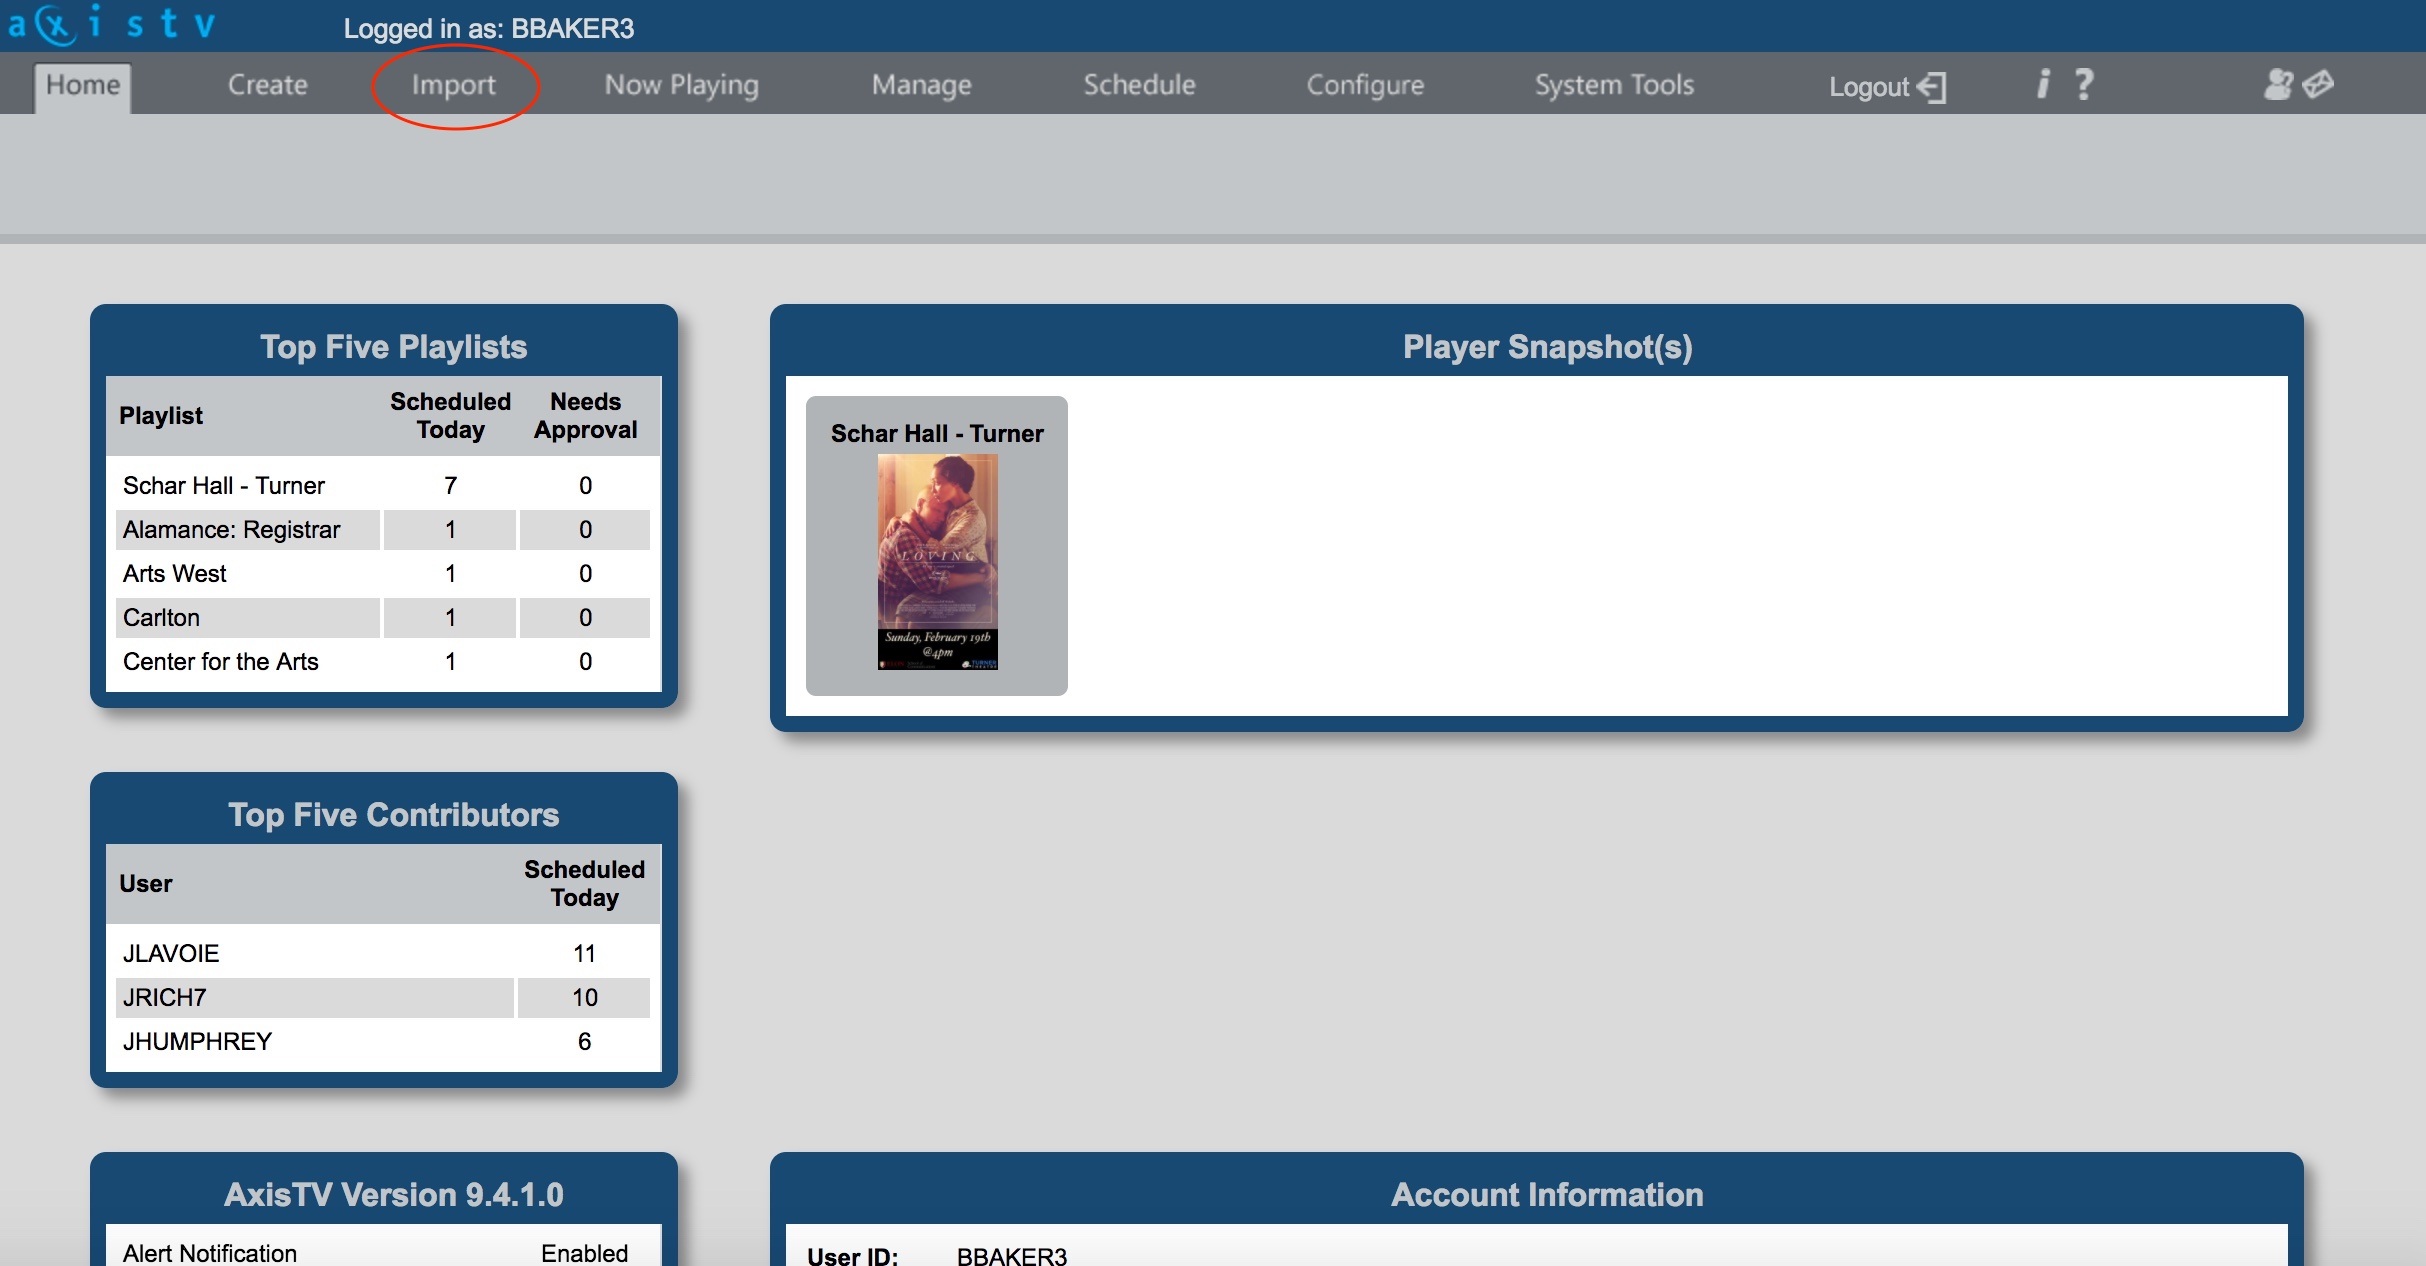 A picture of the visix home page with the import tab circled.